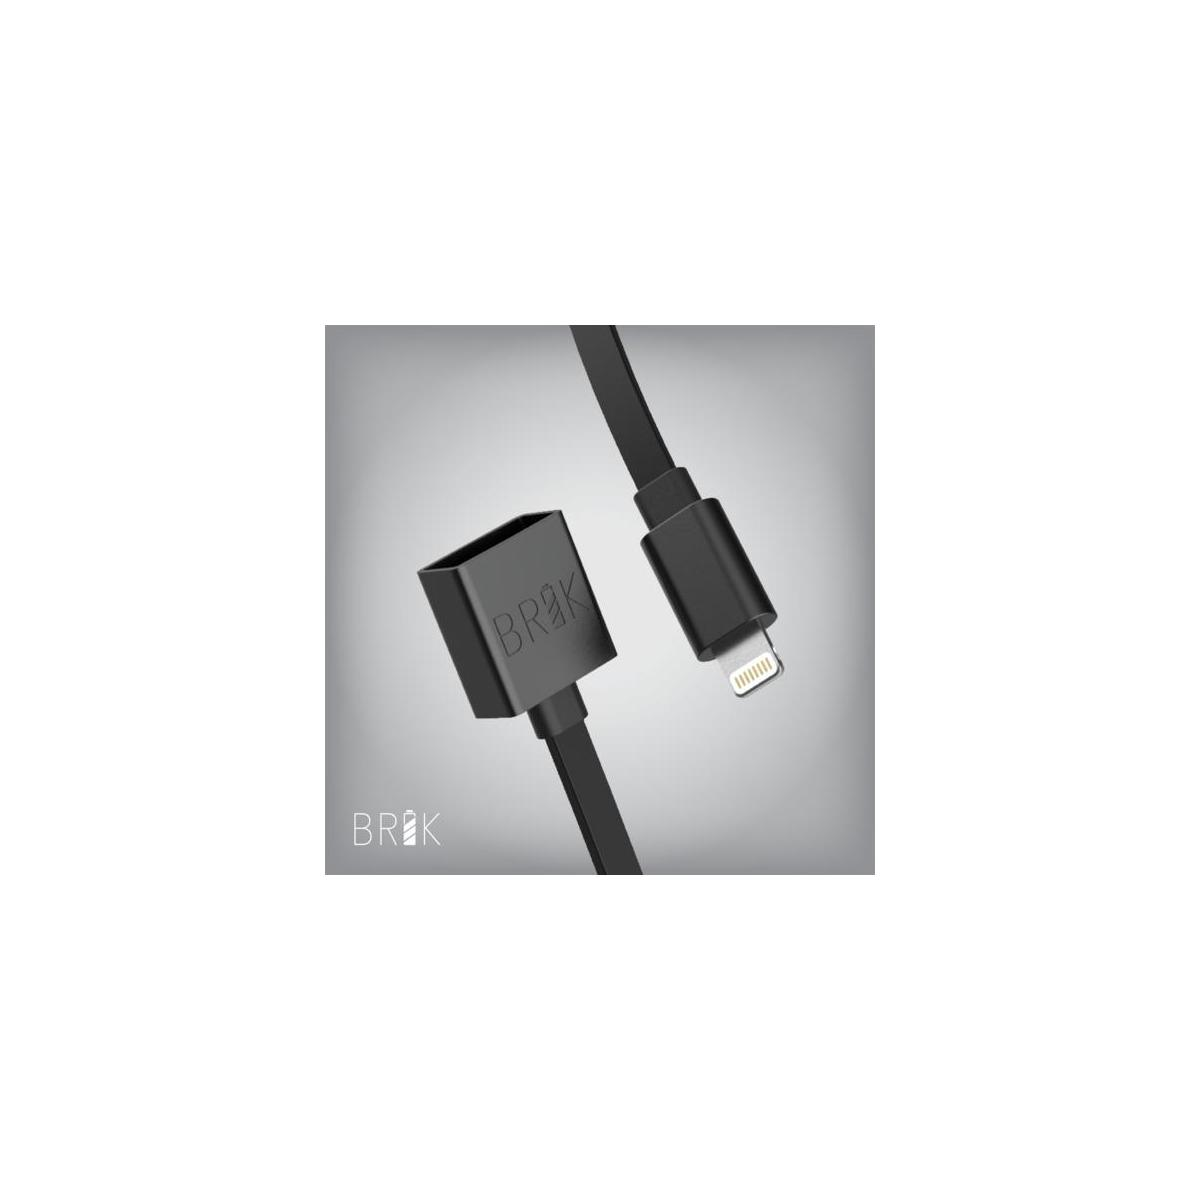 JUUL iPhone Charging Cable